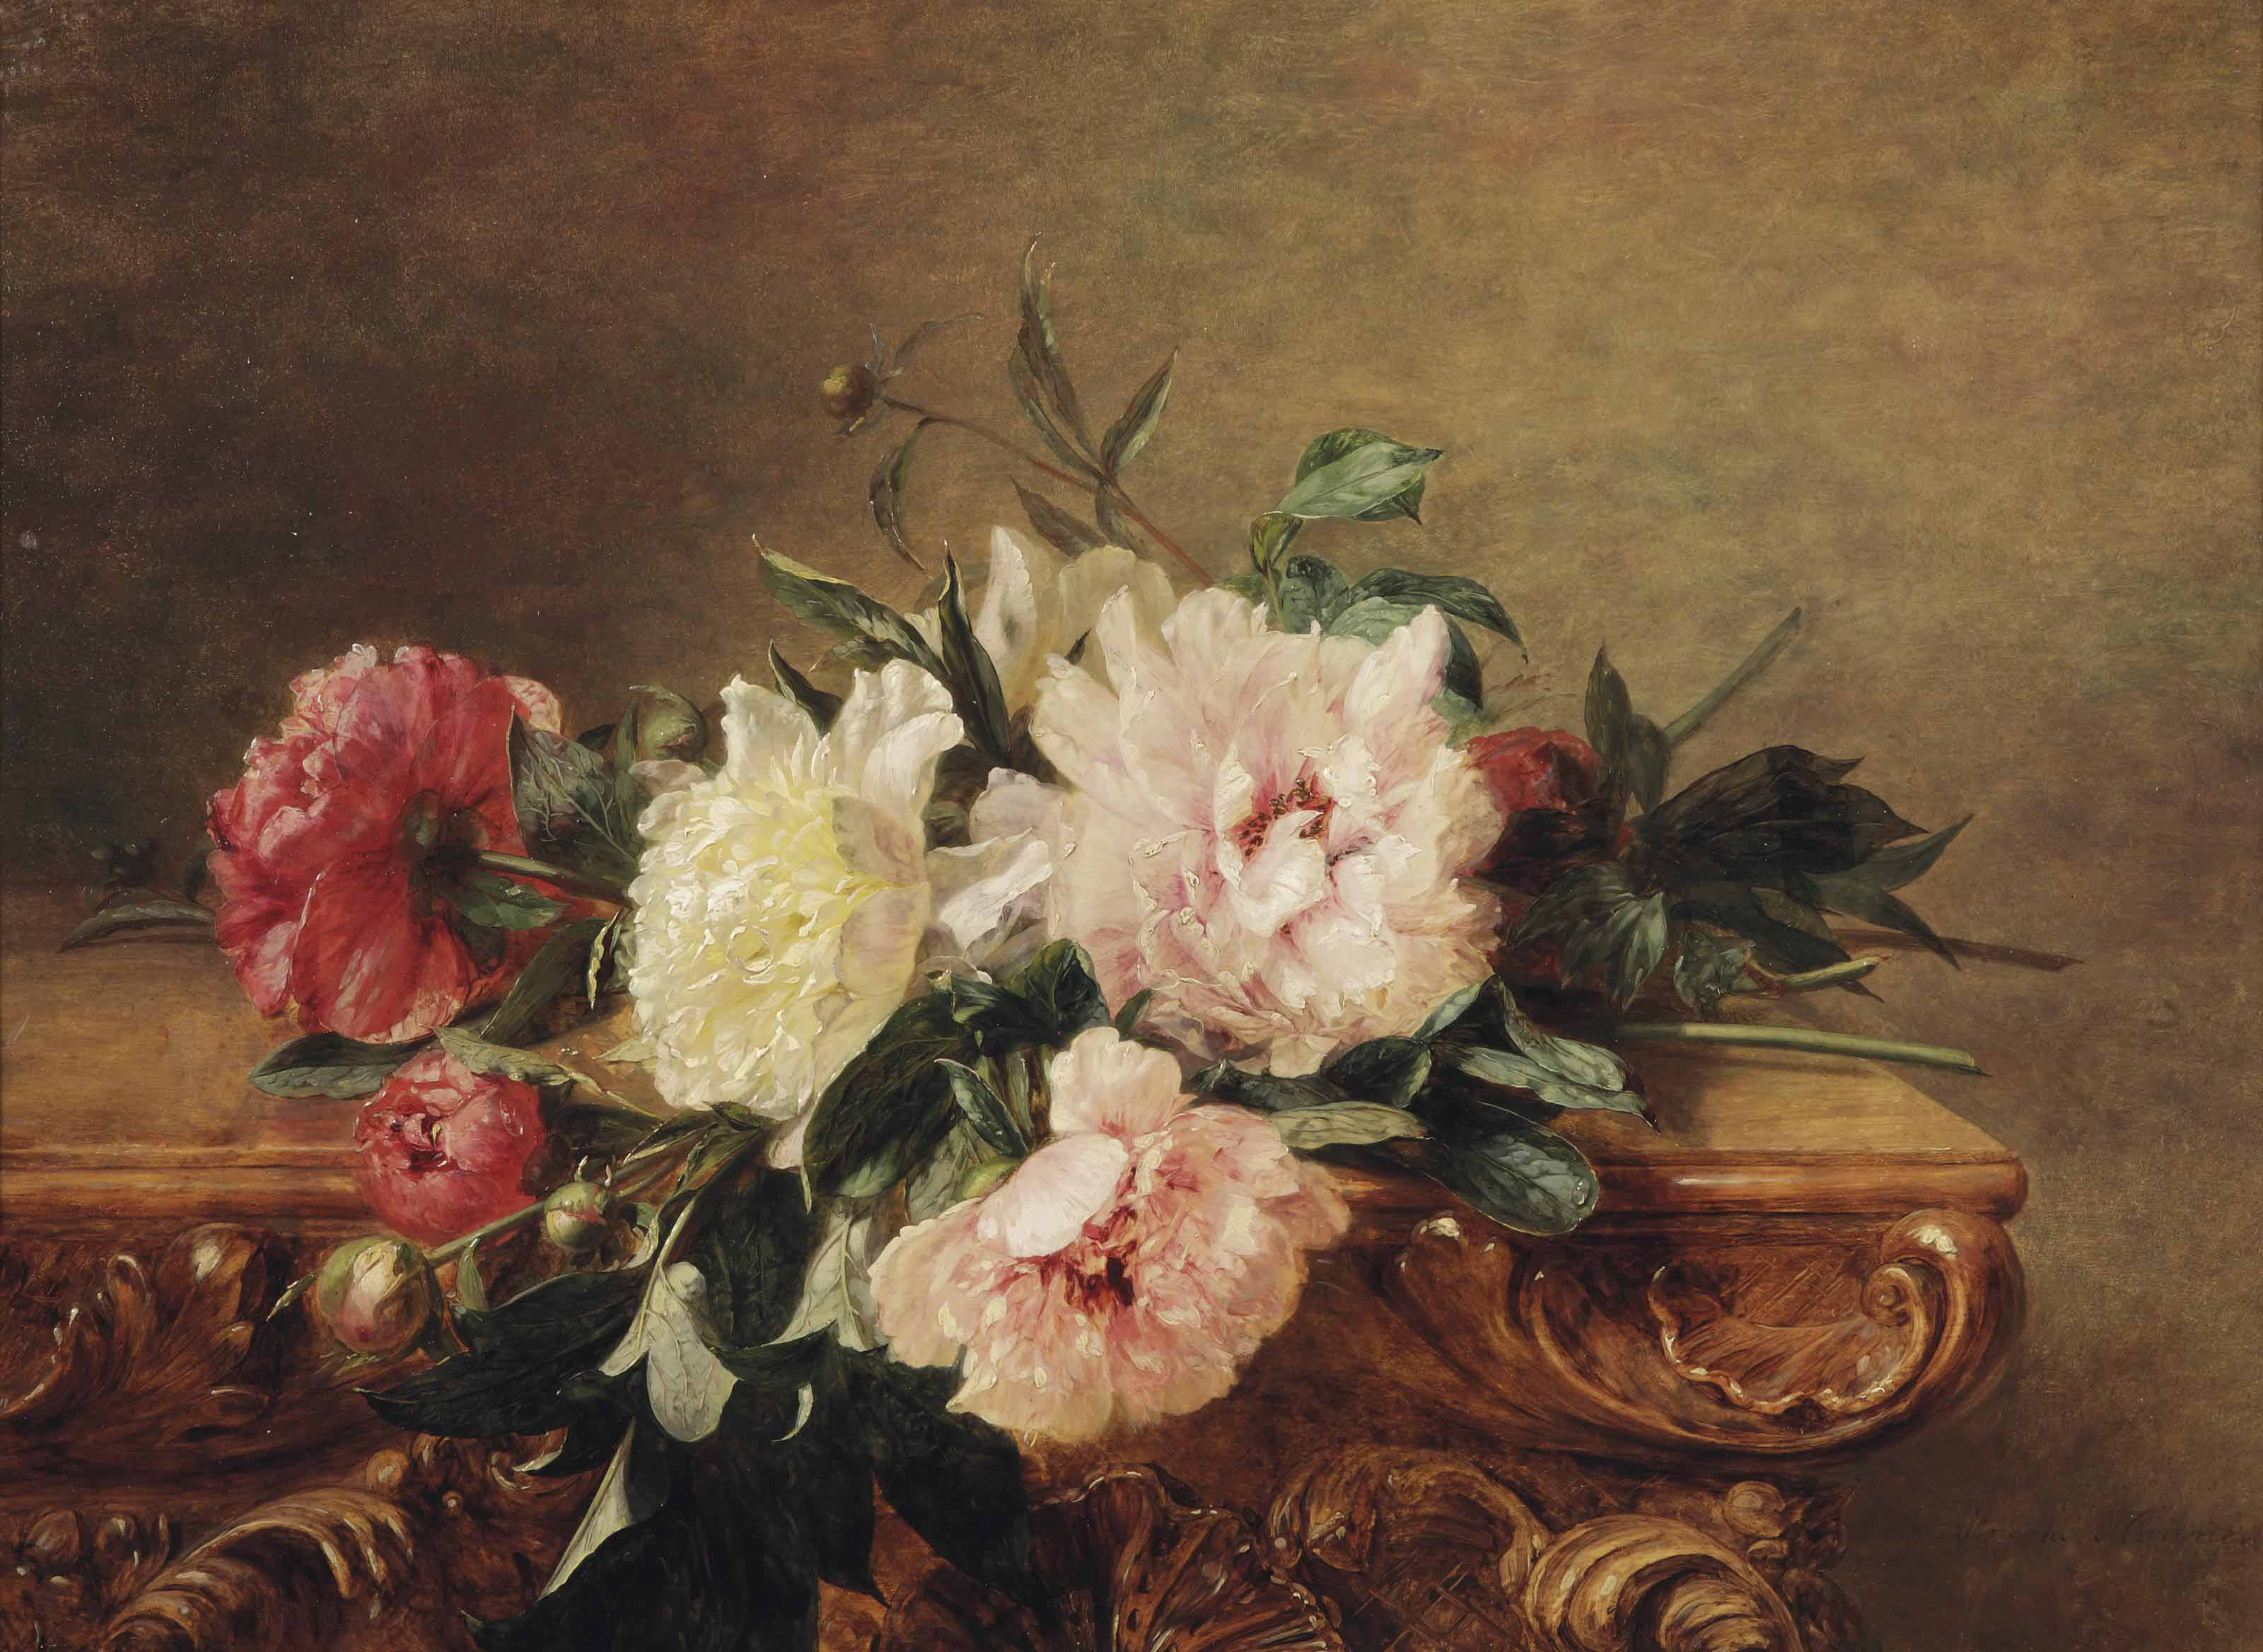 Red, white and pink peonies on a decorated marble ledge